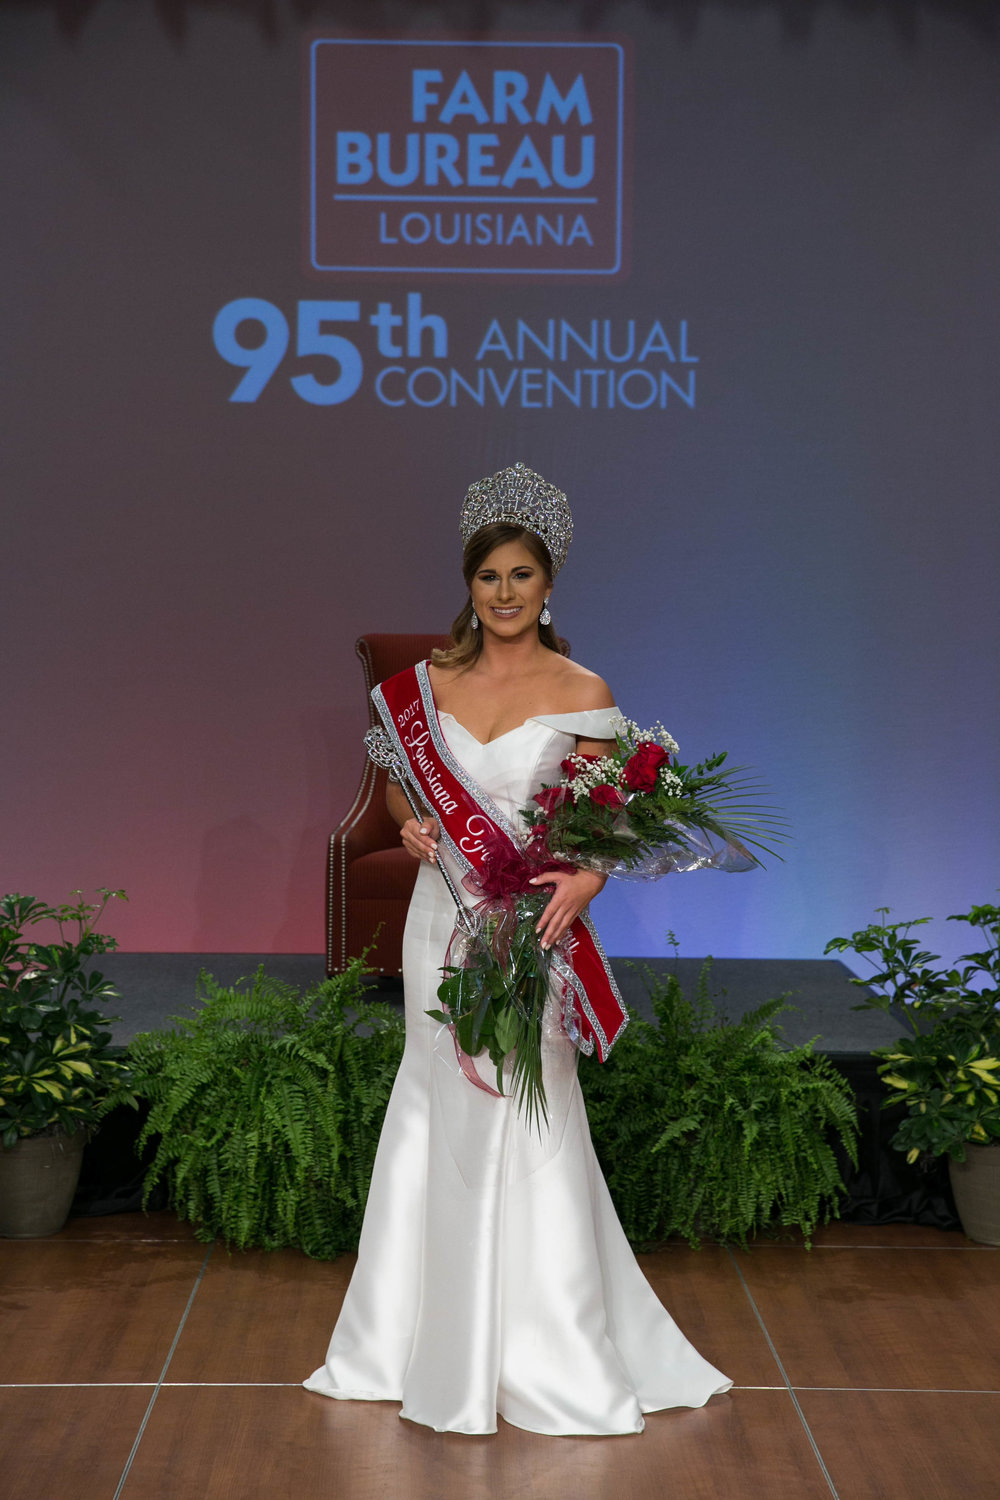 Sloane Judice, 16, of Iberia parish was crowned the 2017 Louisiana Farm Bureau Queen Saturday night at the organization's 95th annual convention in New Orleans.